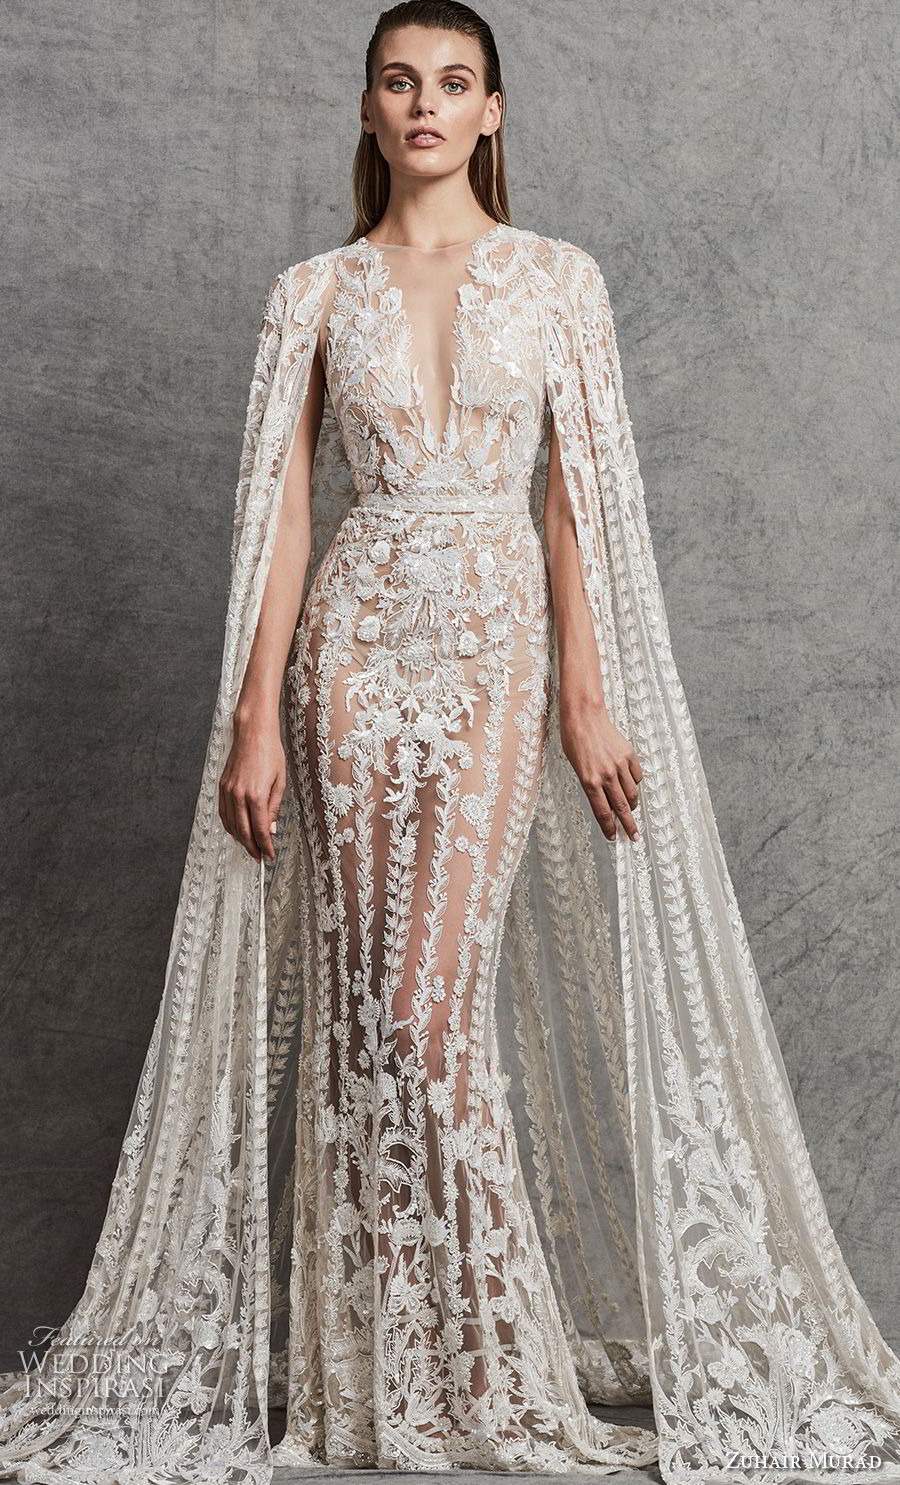 zuhair murad fall 2018 bridal sleeveless illusion bateau deep v neck full embellishment glamorous elegant fit and flare sheath wedding dress with cape sweep train (4) mv